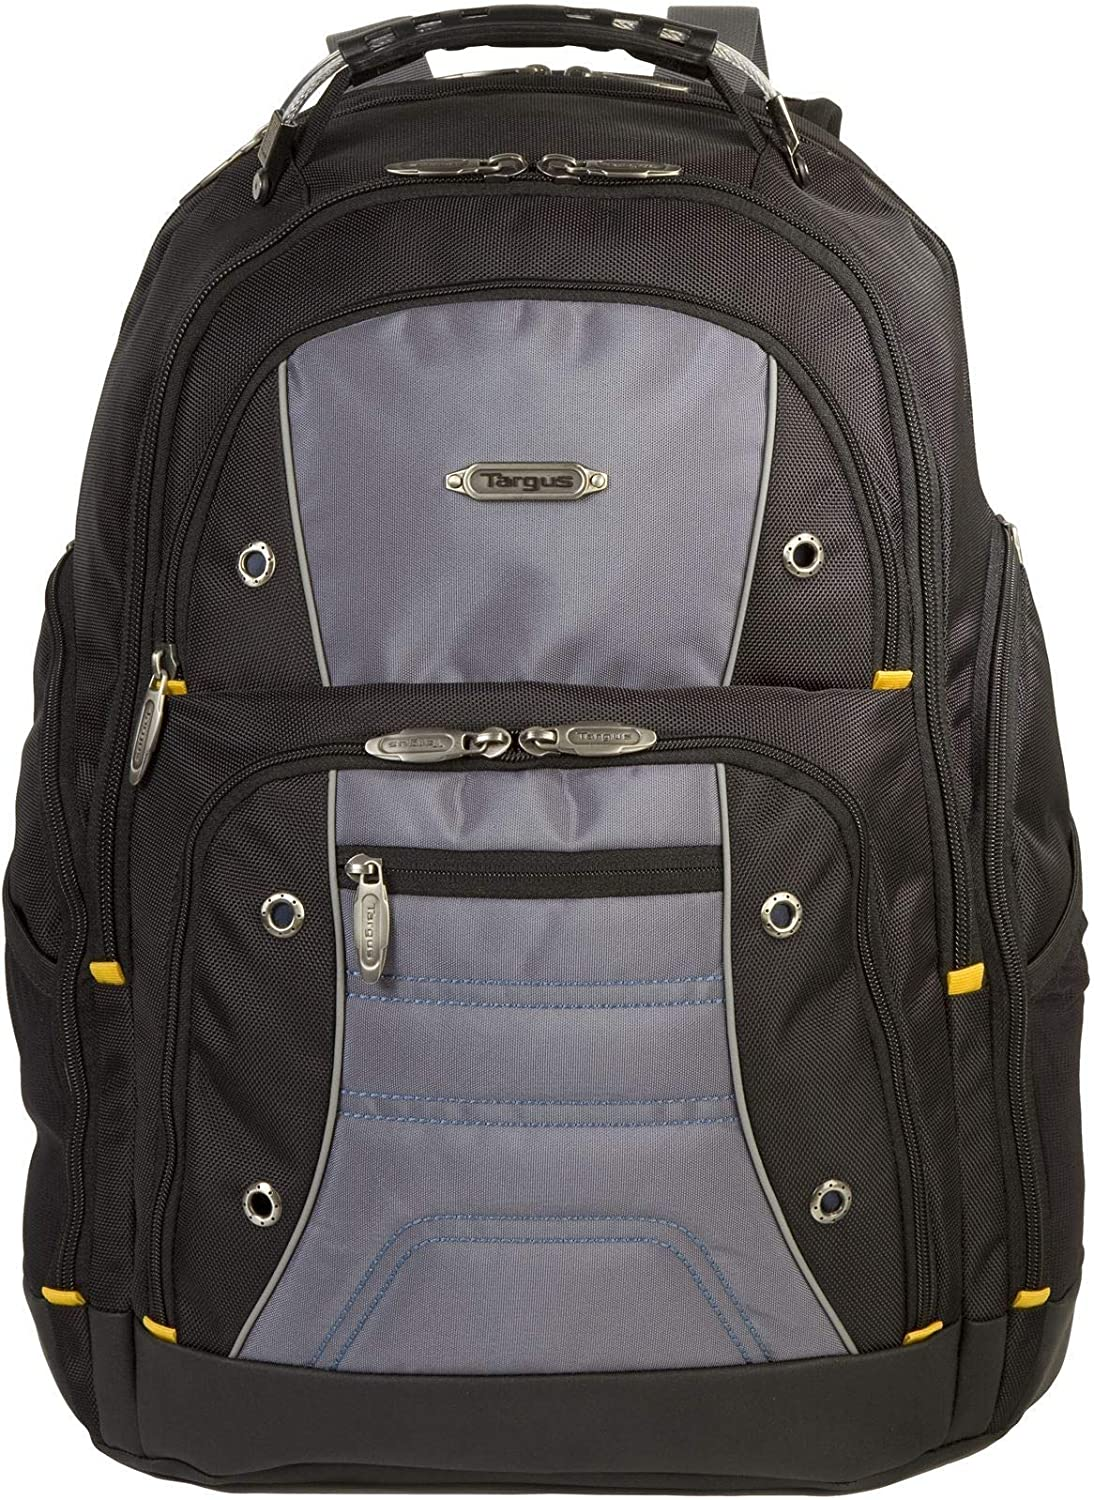 "Targus 17"" Drifter II Laptop Backpack - TSB239US"